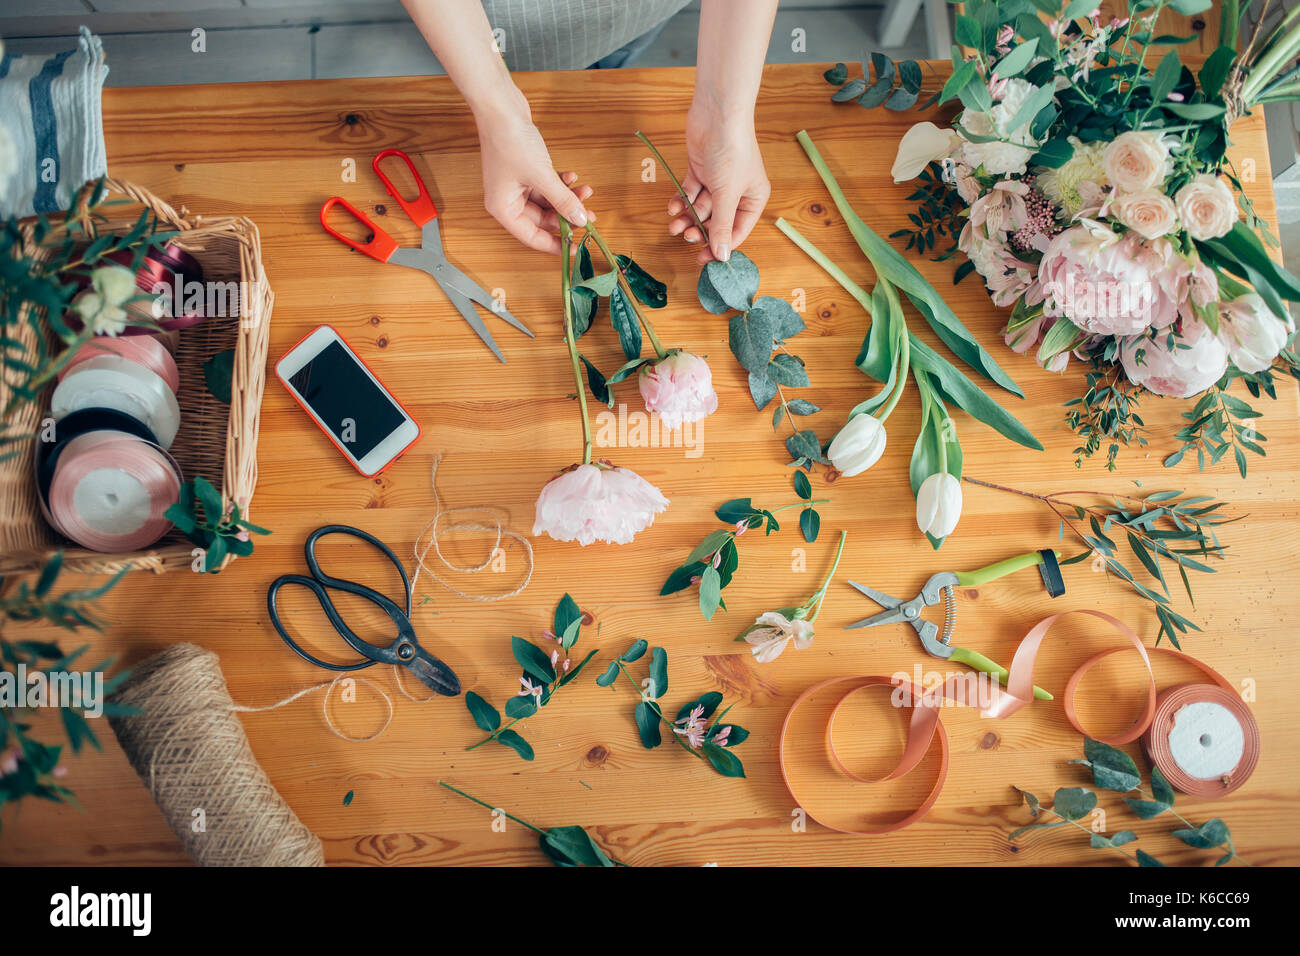 hands of florist against desktop with working tools and ribbons on wooden background - Stock Image